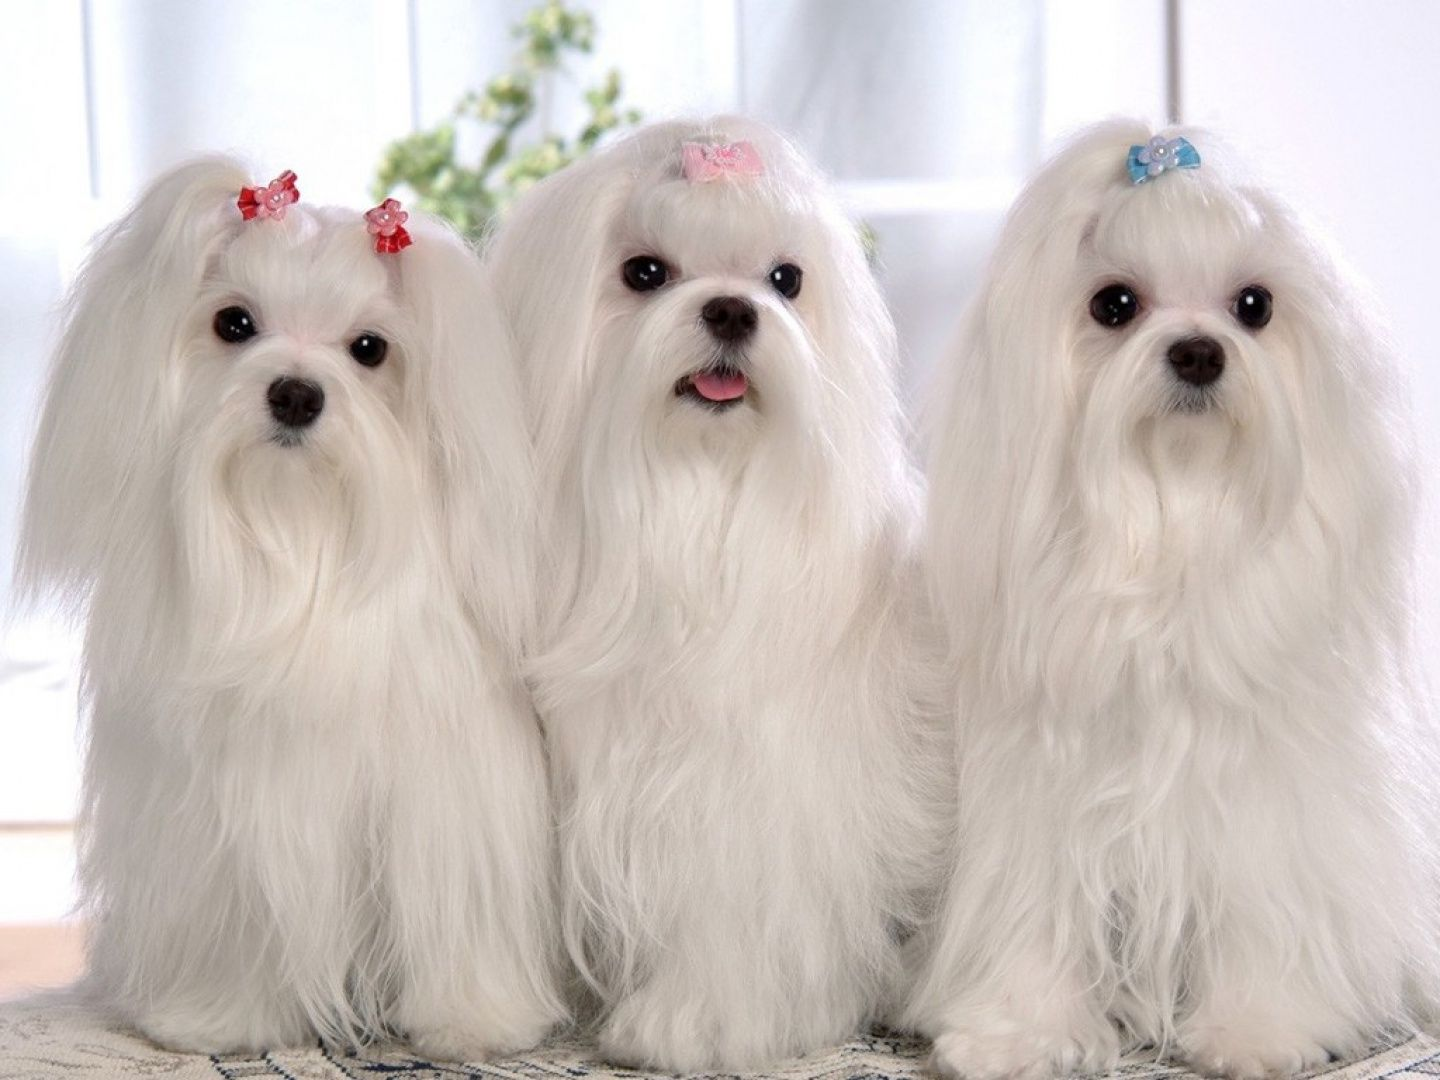 Shih Tzu Life Span Maltese Puppy Maltese Dogs Teacup Puppies